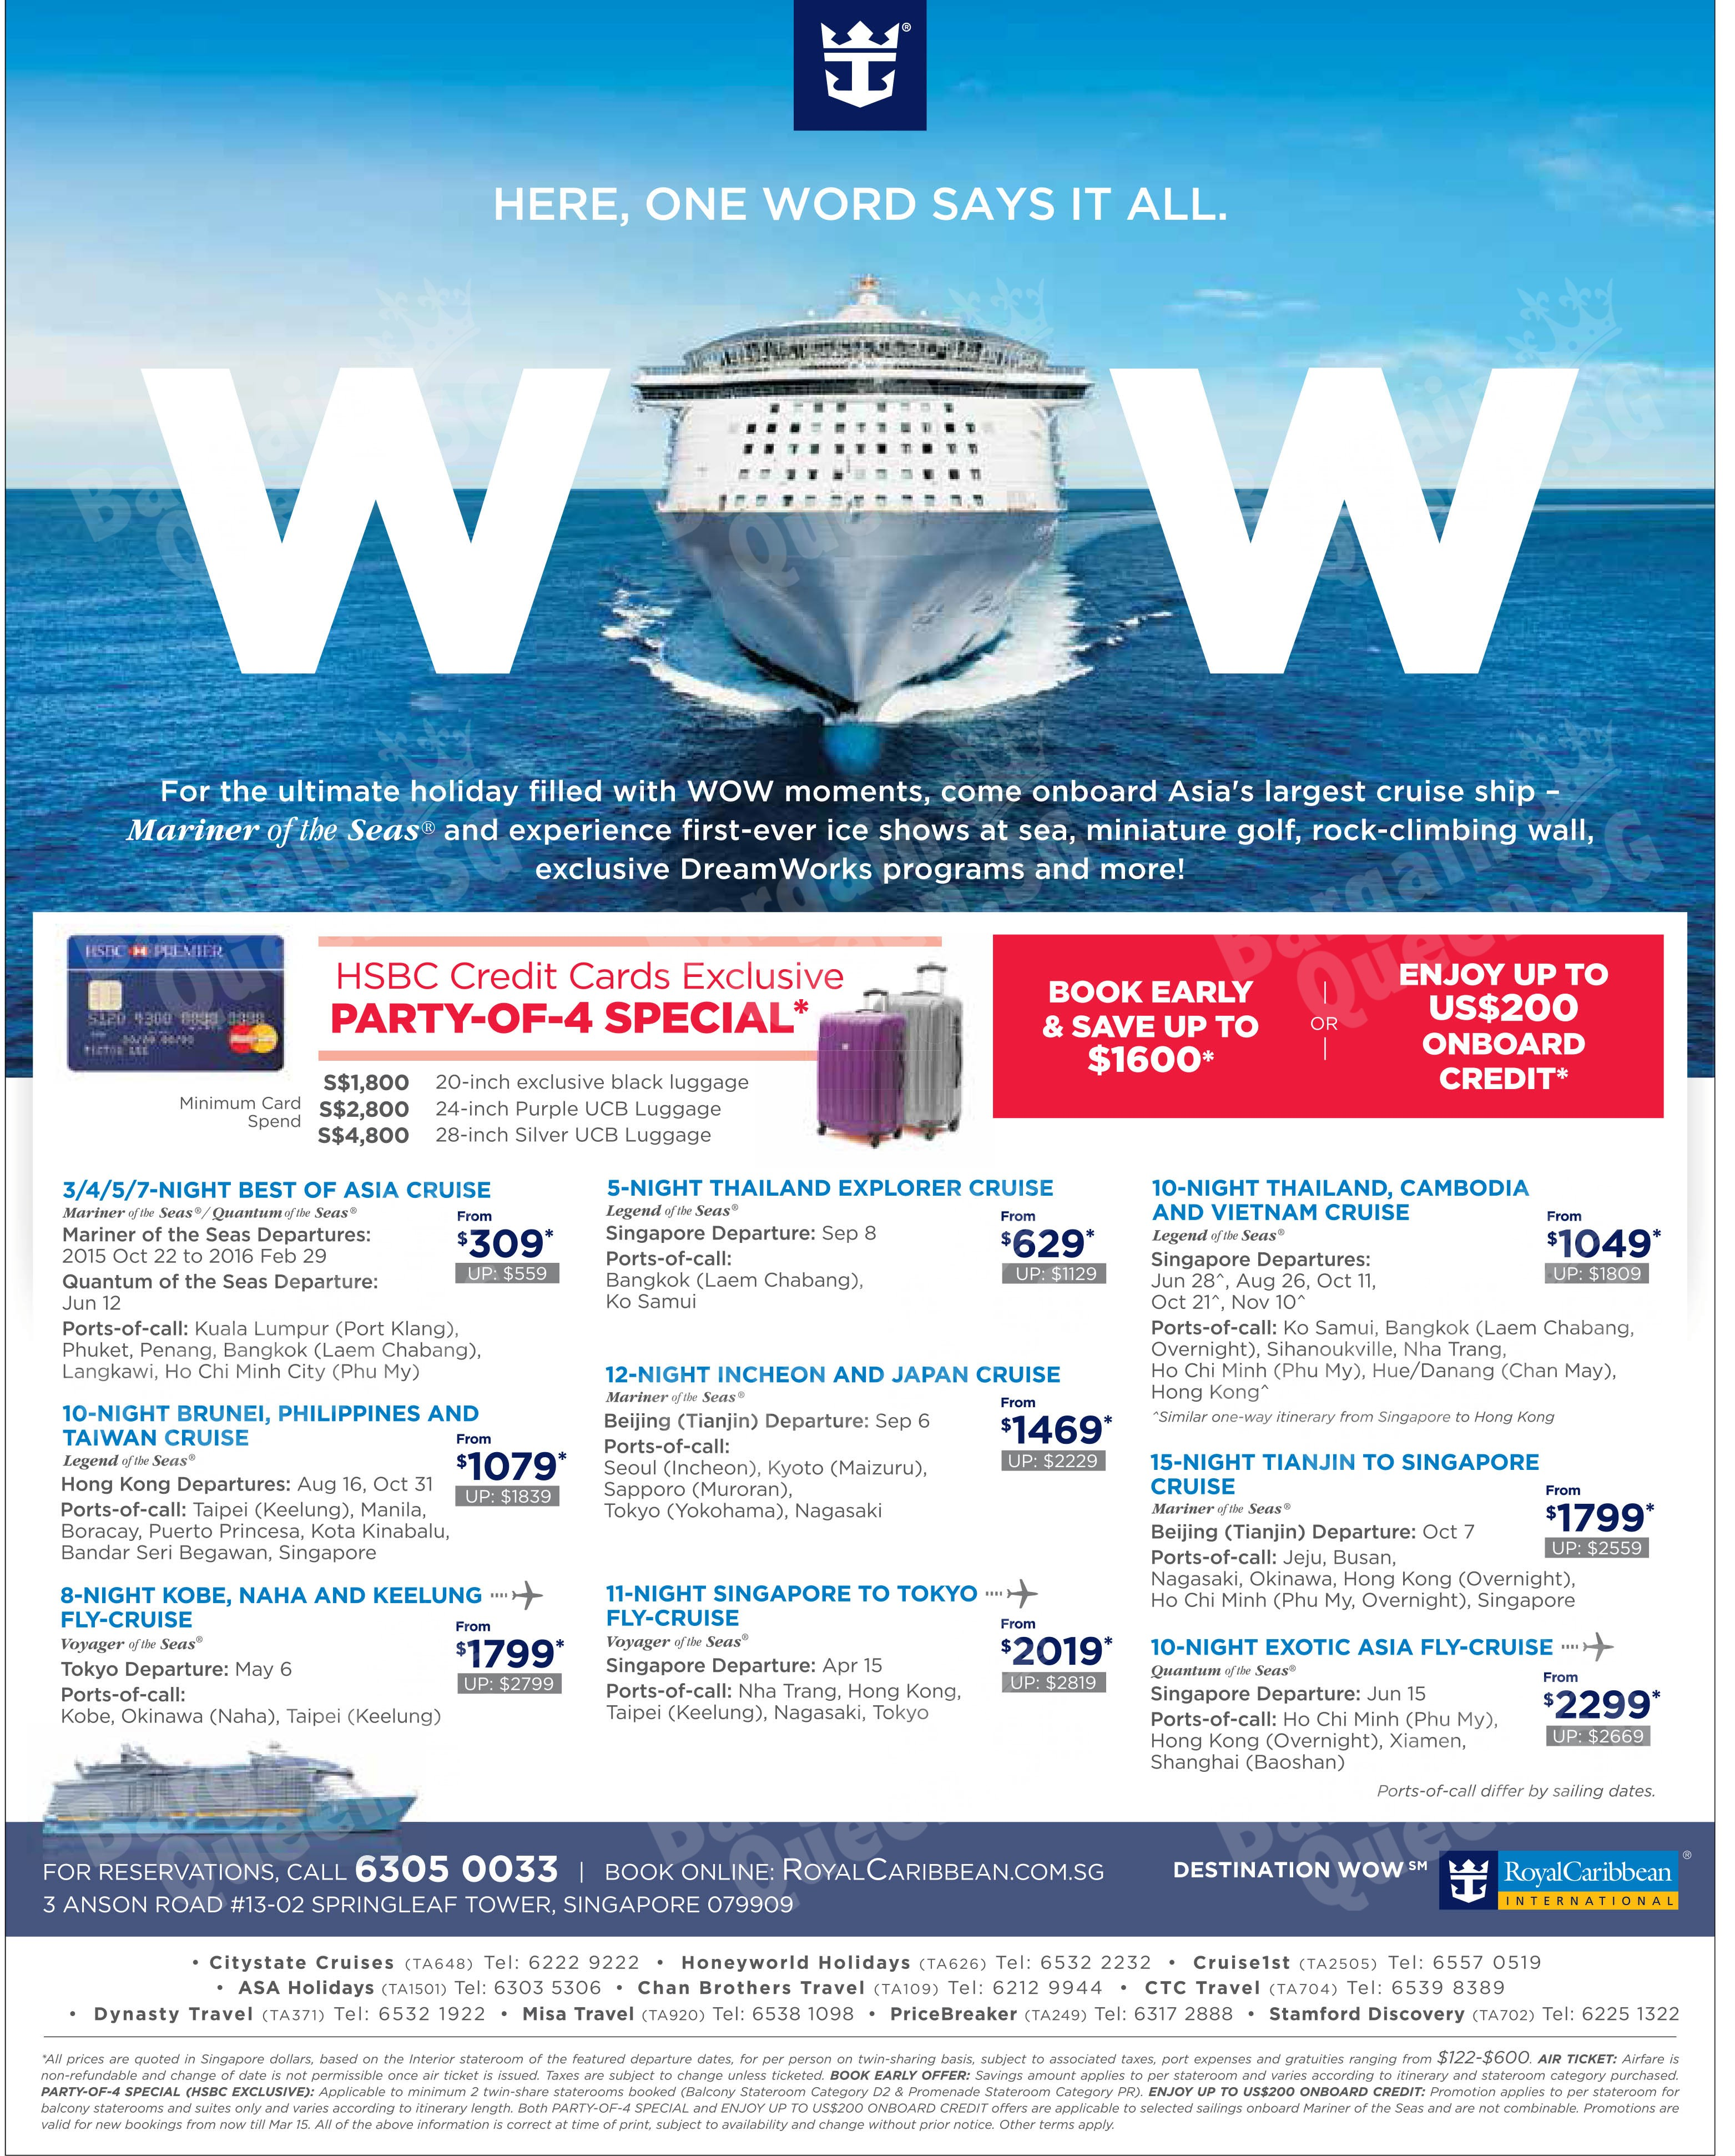 Royal caribbean cruise singapore booking wallpaper punchaos nice for those who are not fond of flying going on a cruise provides an excellent on board are testament to royal caribbeans high entertainment xflitez Images